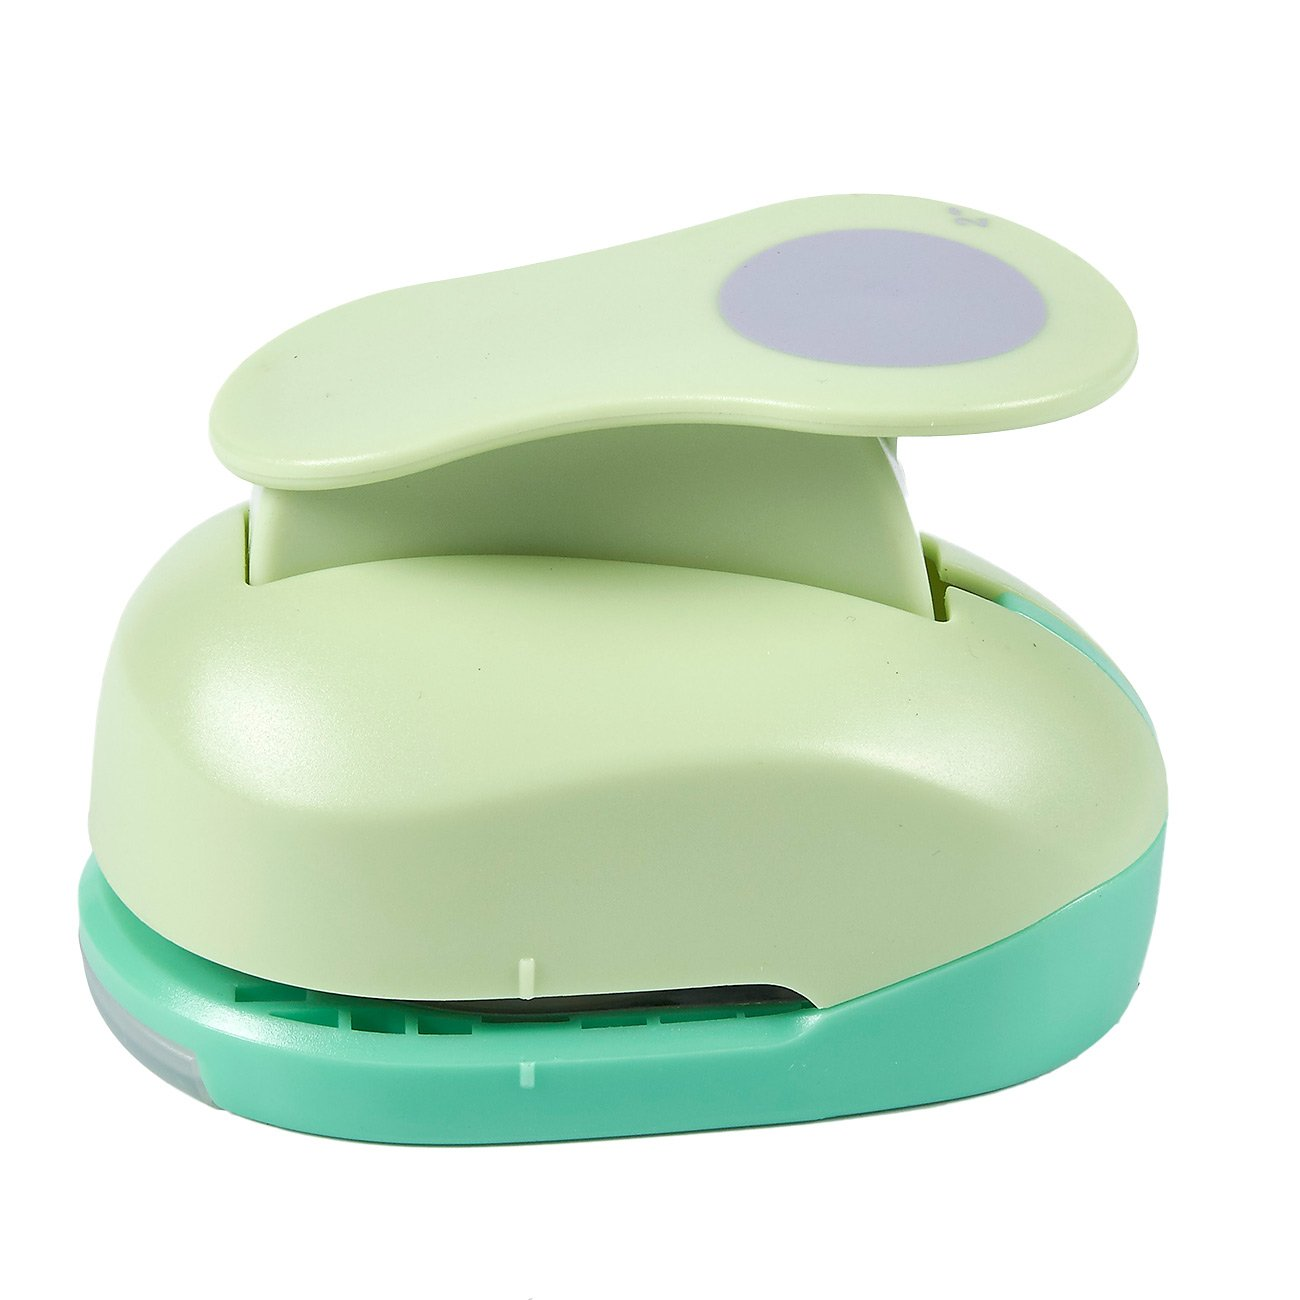 Paper Punch Shapes - Circle-Shaped Hole Puncher for Scrapbook, DIY Craft Project, Kids Artwork, Green, 4.25 x 3.1 x 2.75 inches